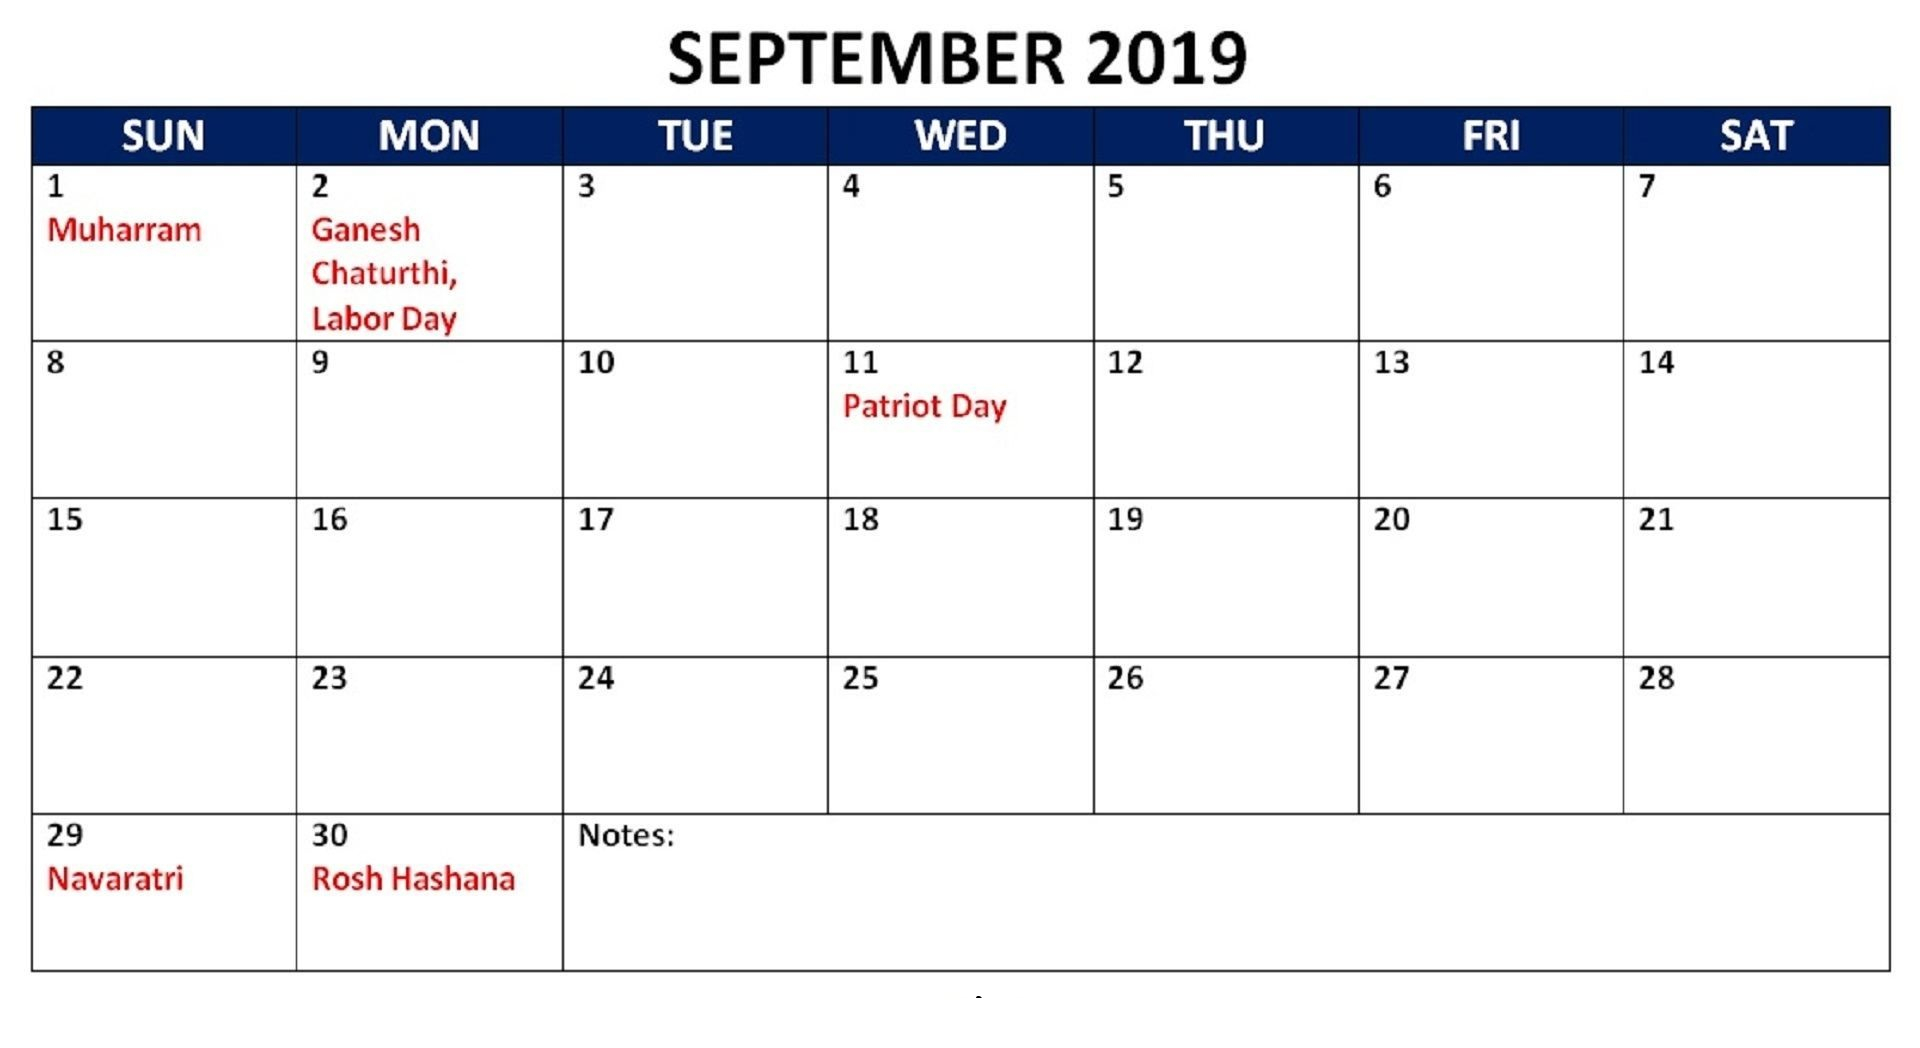 September 2019 Calendar With Holidays Public, National - Latest with regard to Blank September Calendar Printable With Holidays